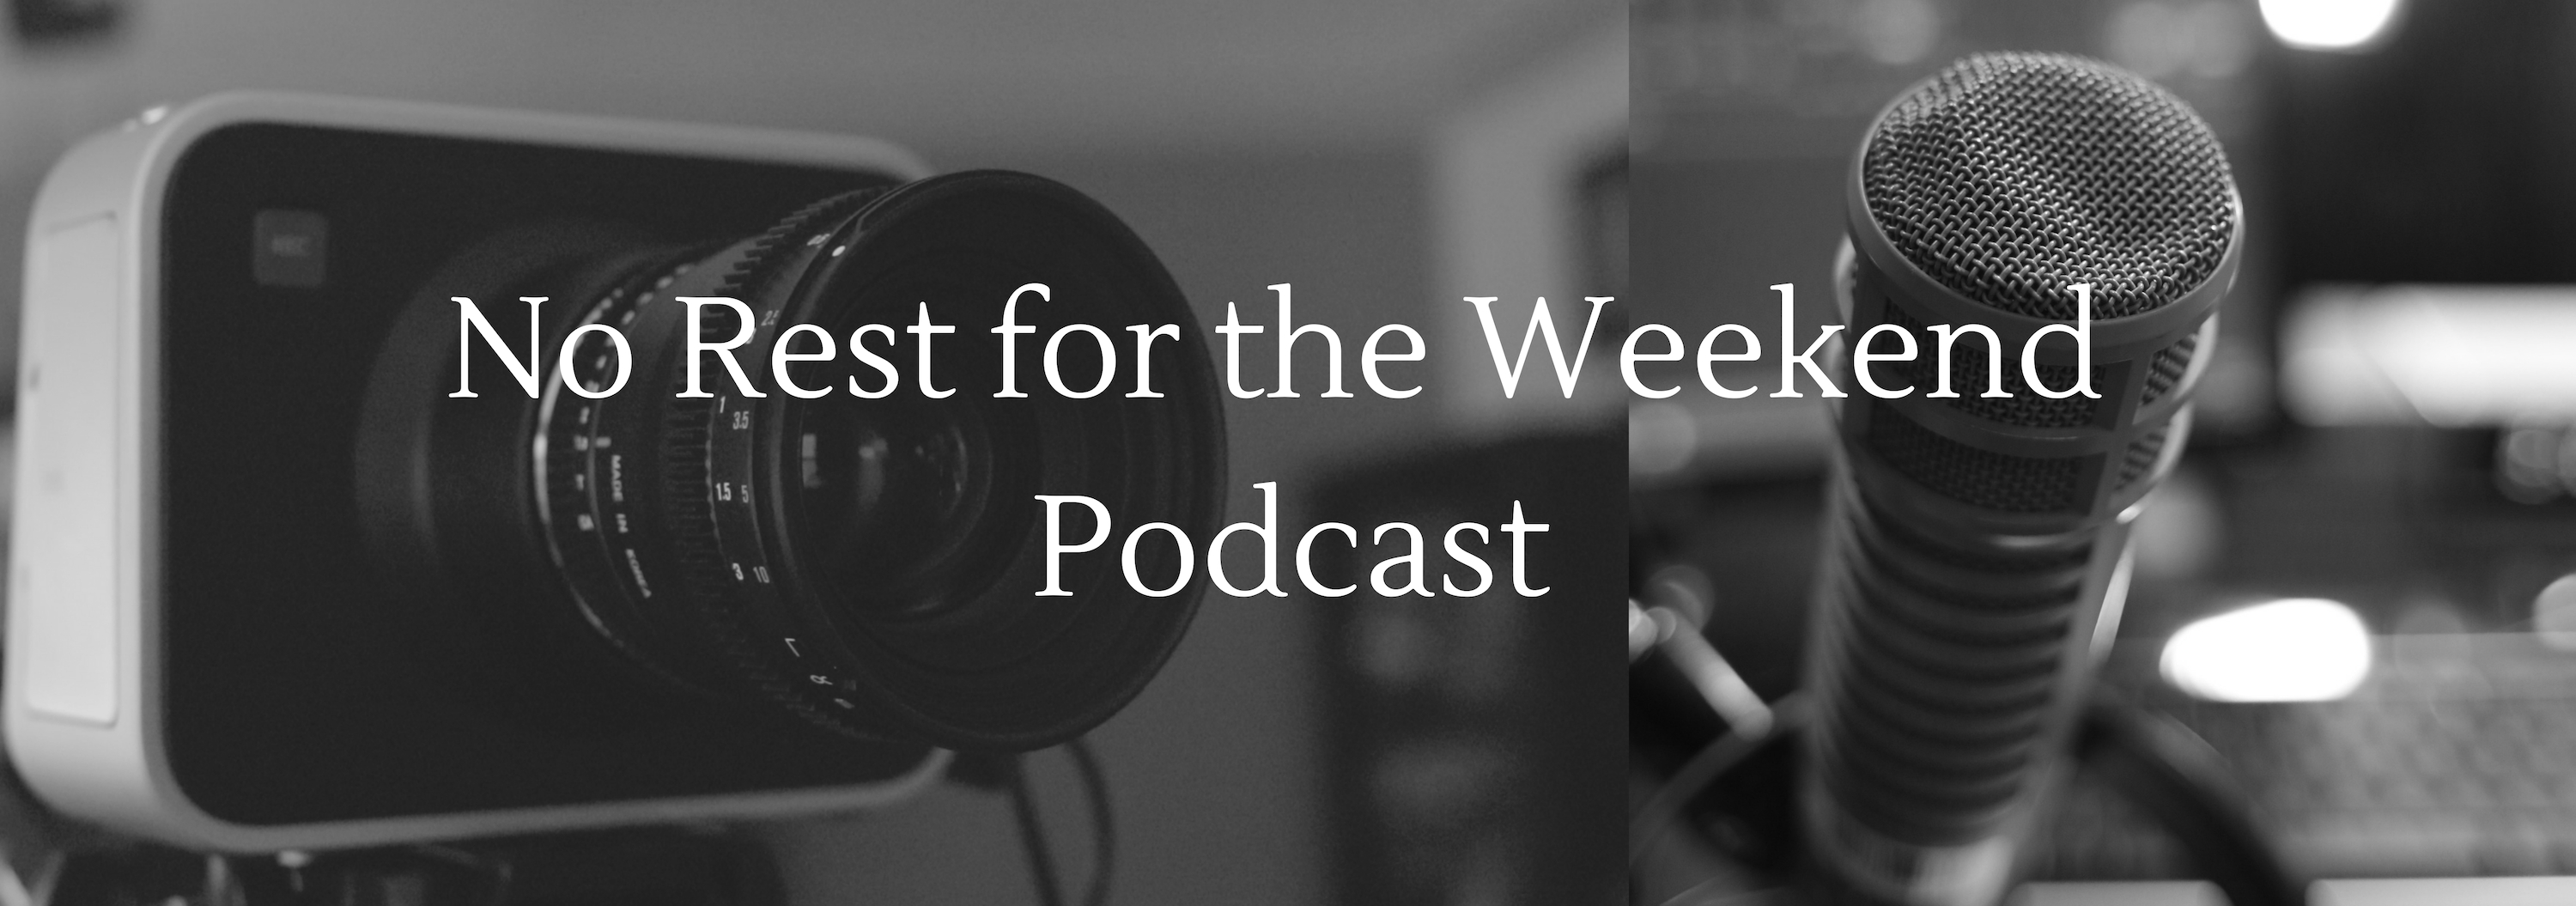 No Rest for the Weekend Podcast